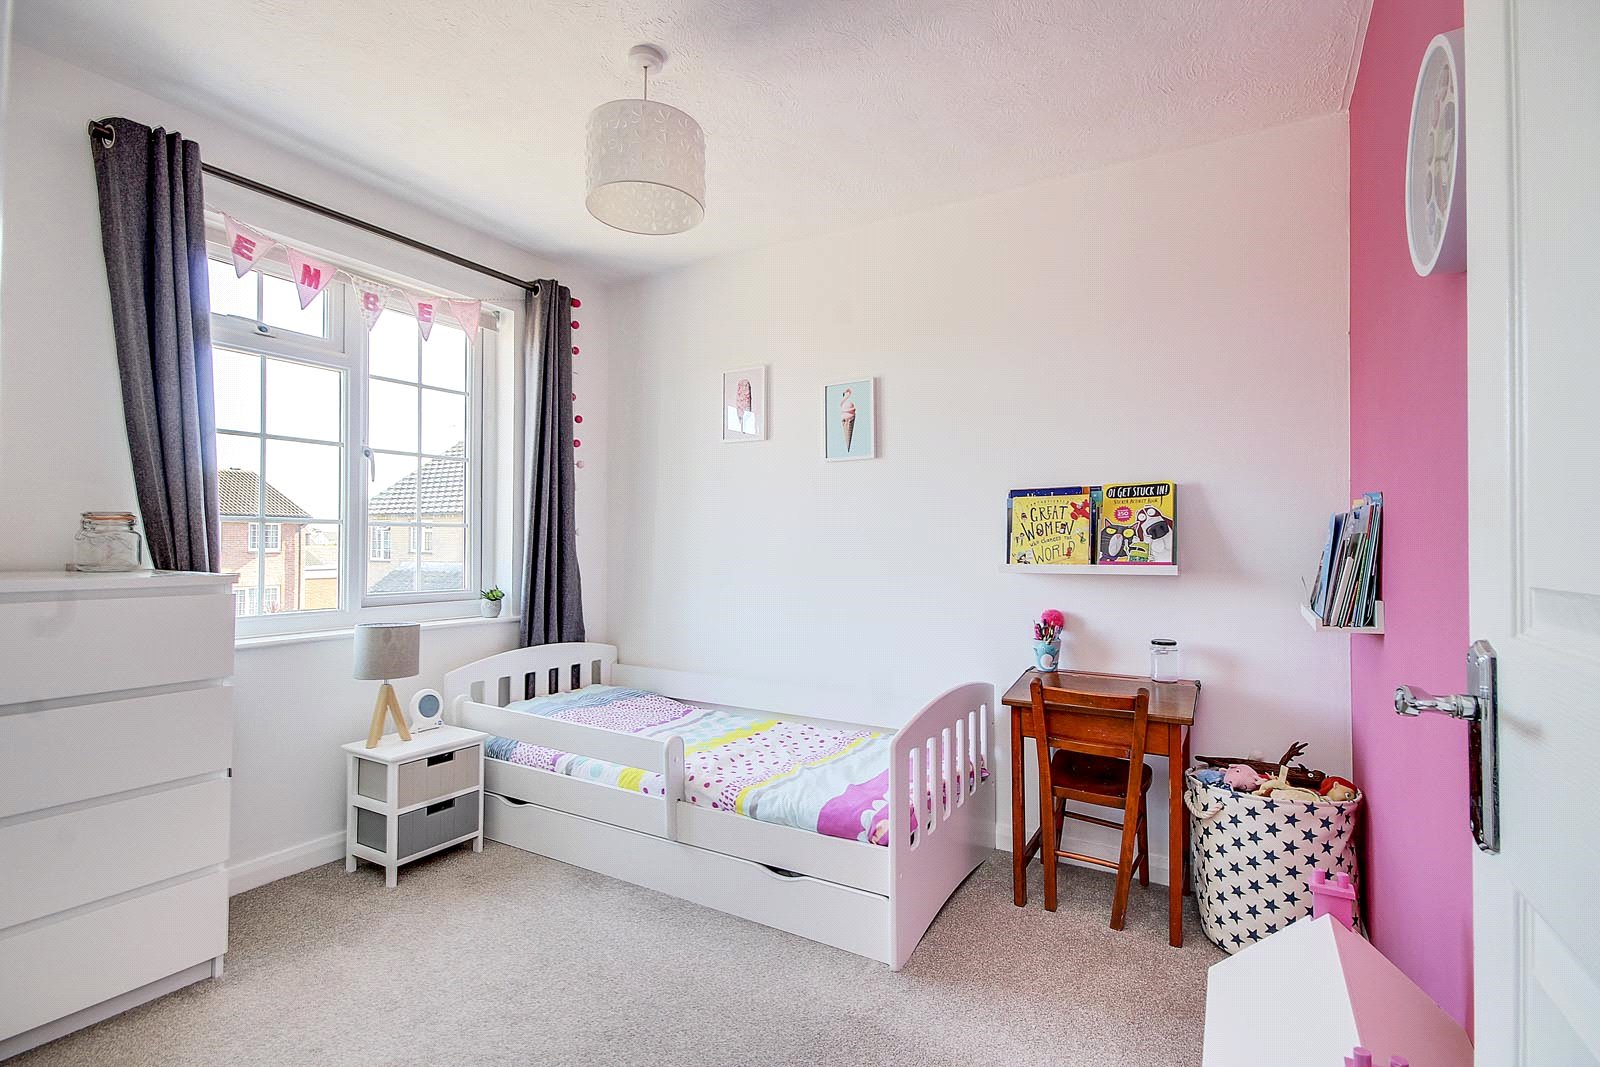 3 bed house for sale in Littlehampton, BN17 6RJ  - Property Image 6